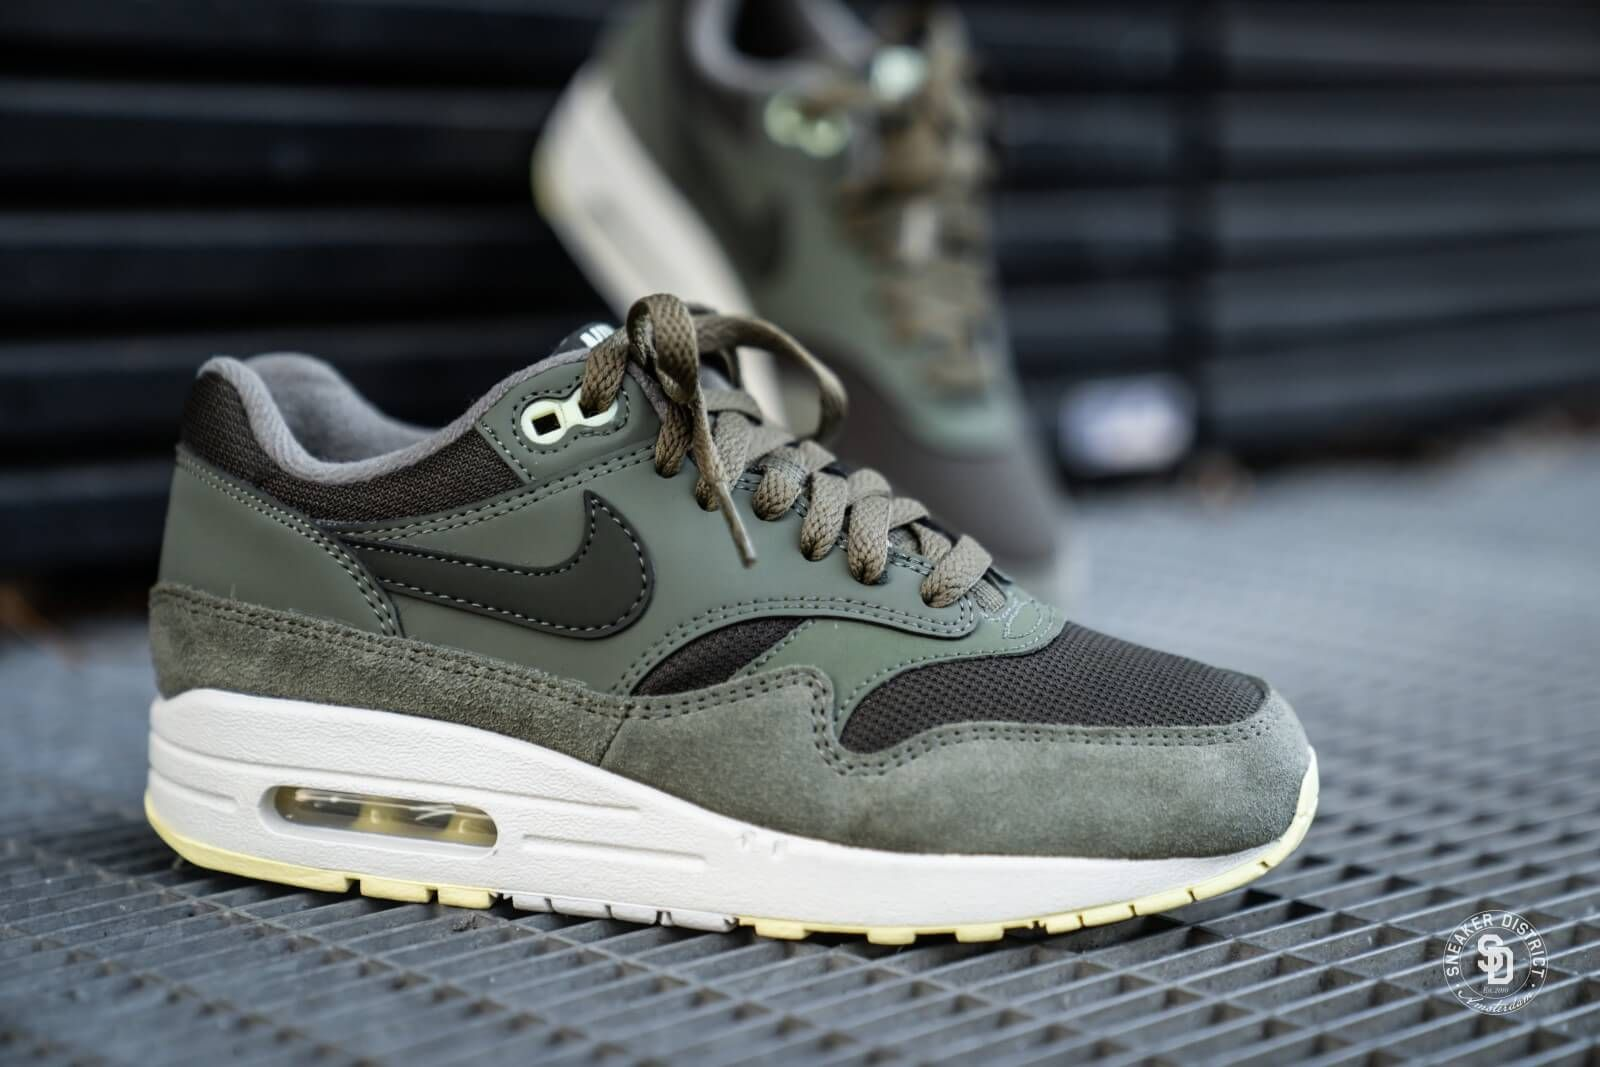 Nike Women's Air Max 1 Sequoia/Medium Olive - 319986-305 ...